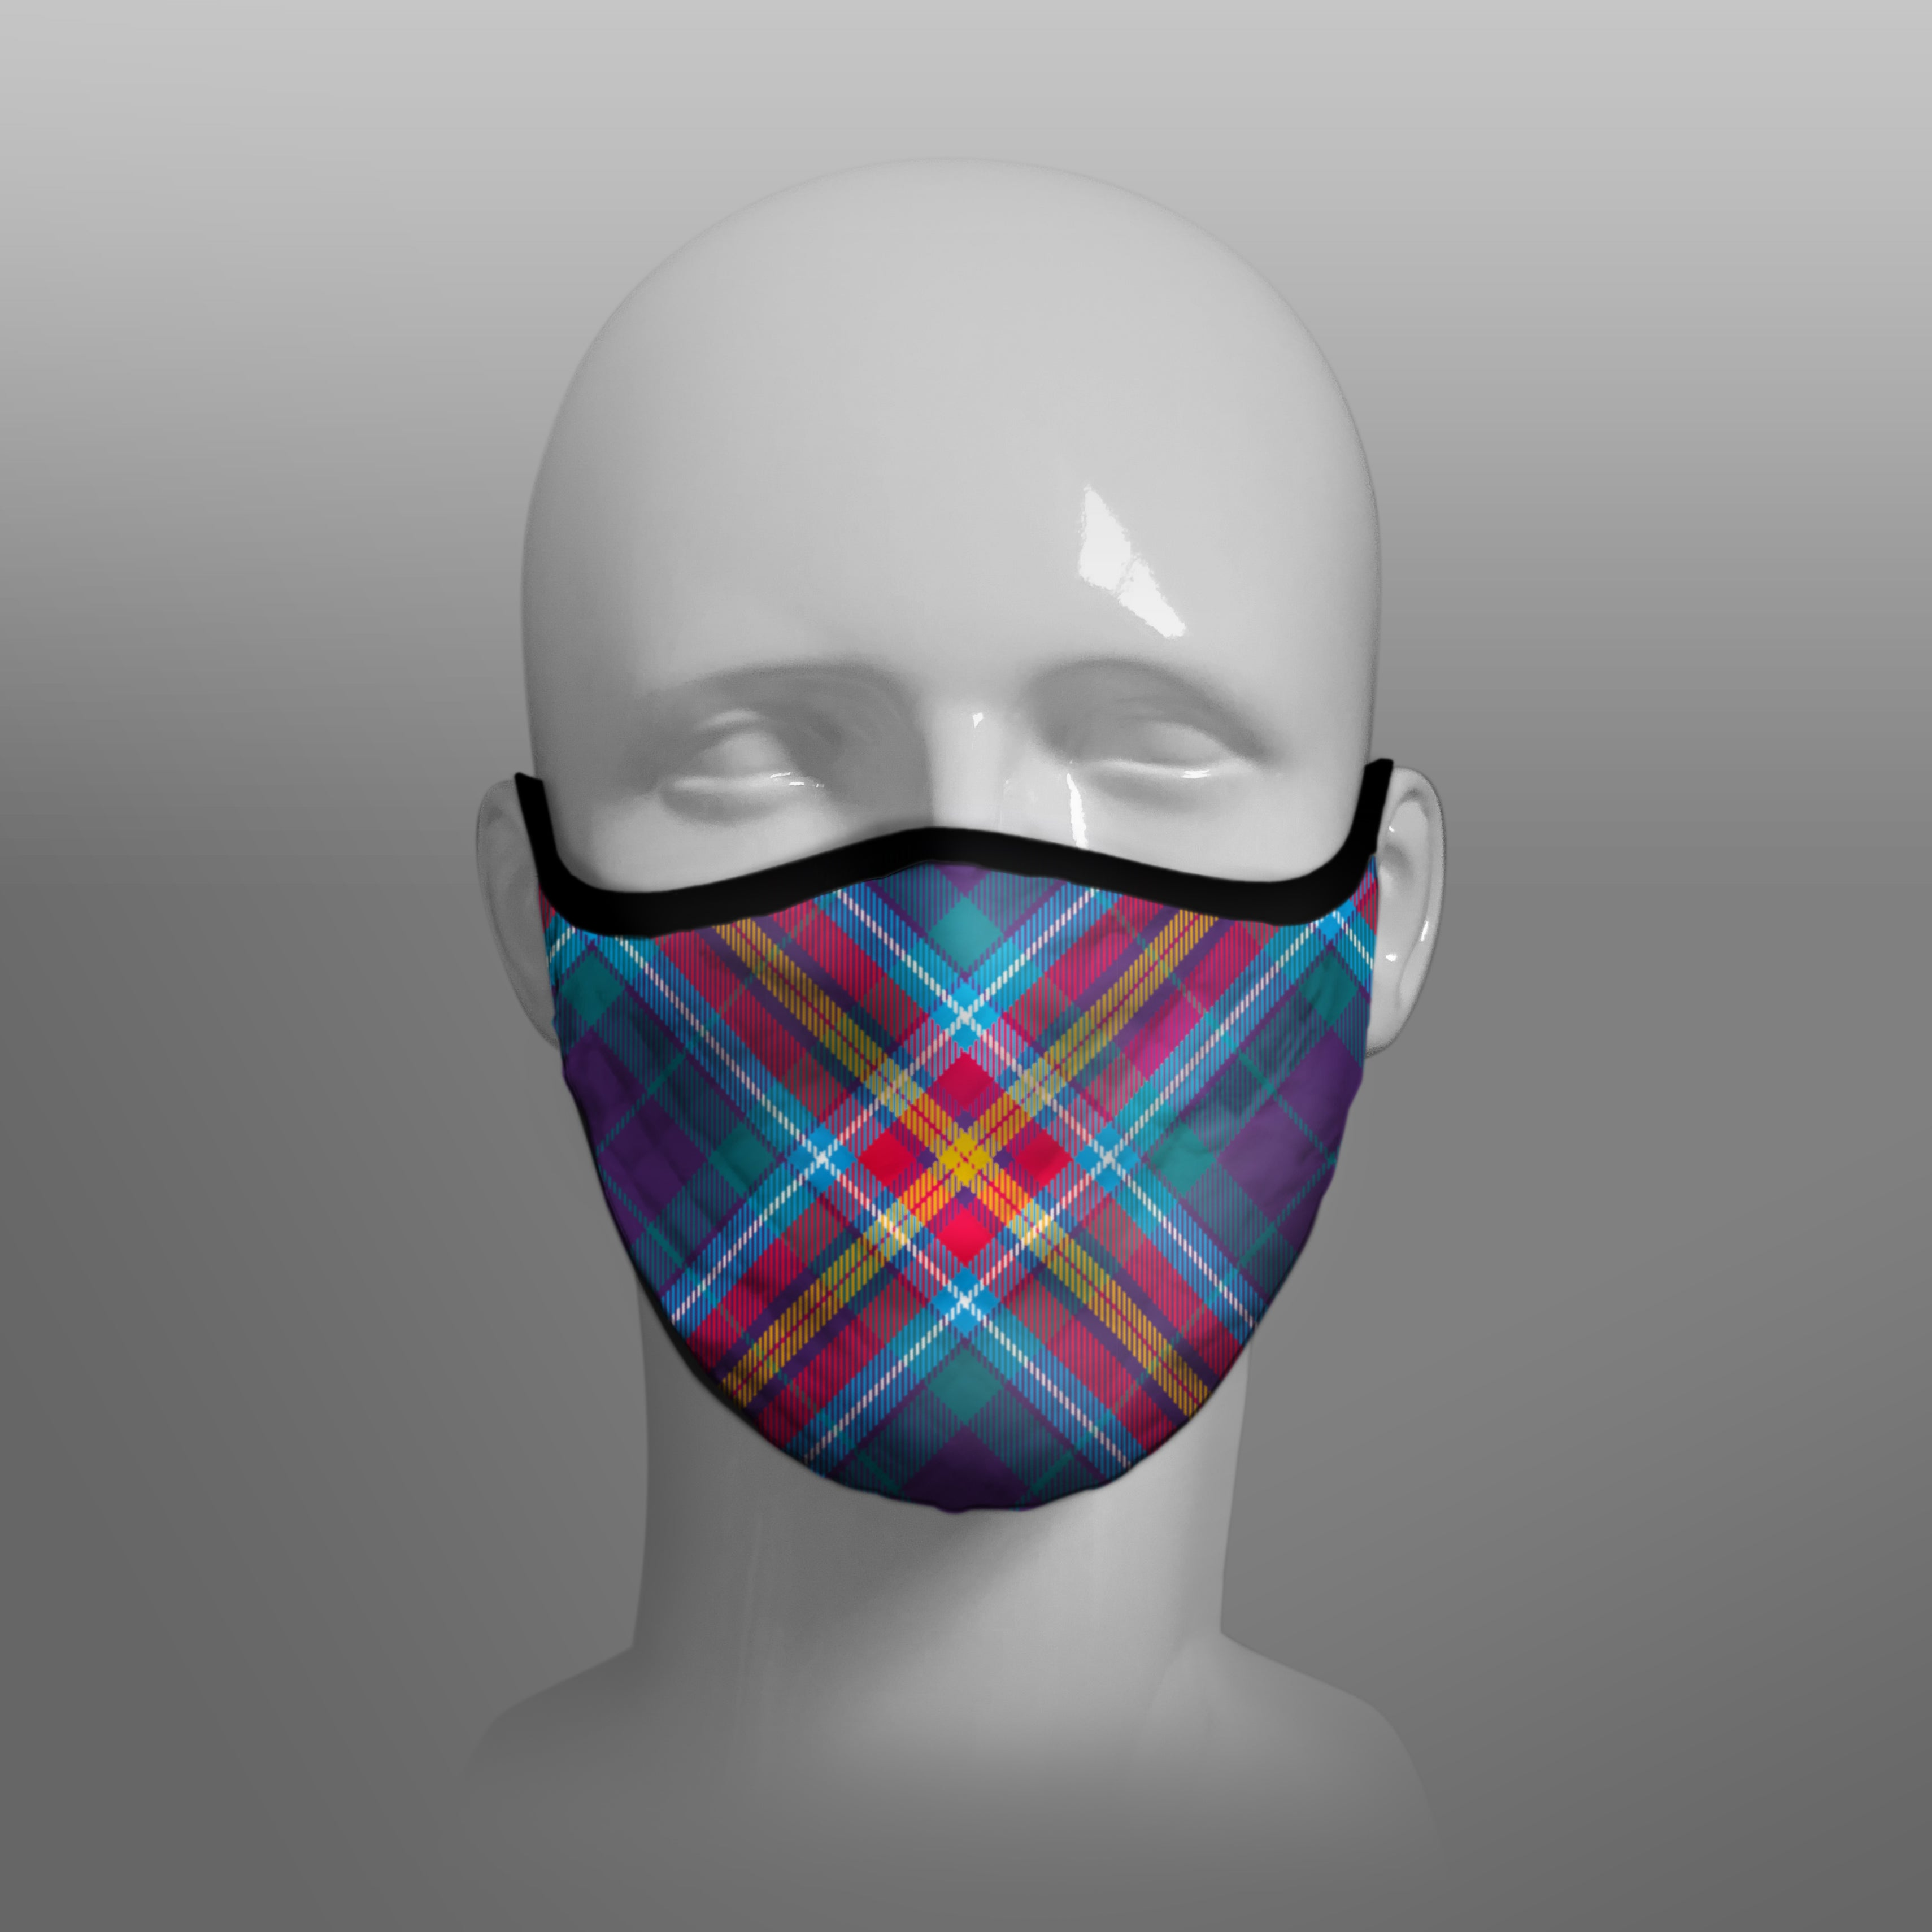 YES Alba Gu Bràth Tartan custom face mask by Steven Patrick Sim the Tartan Artisan